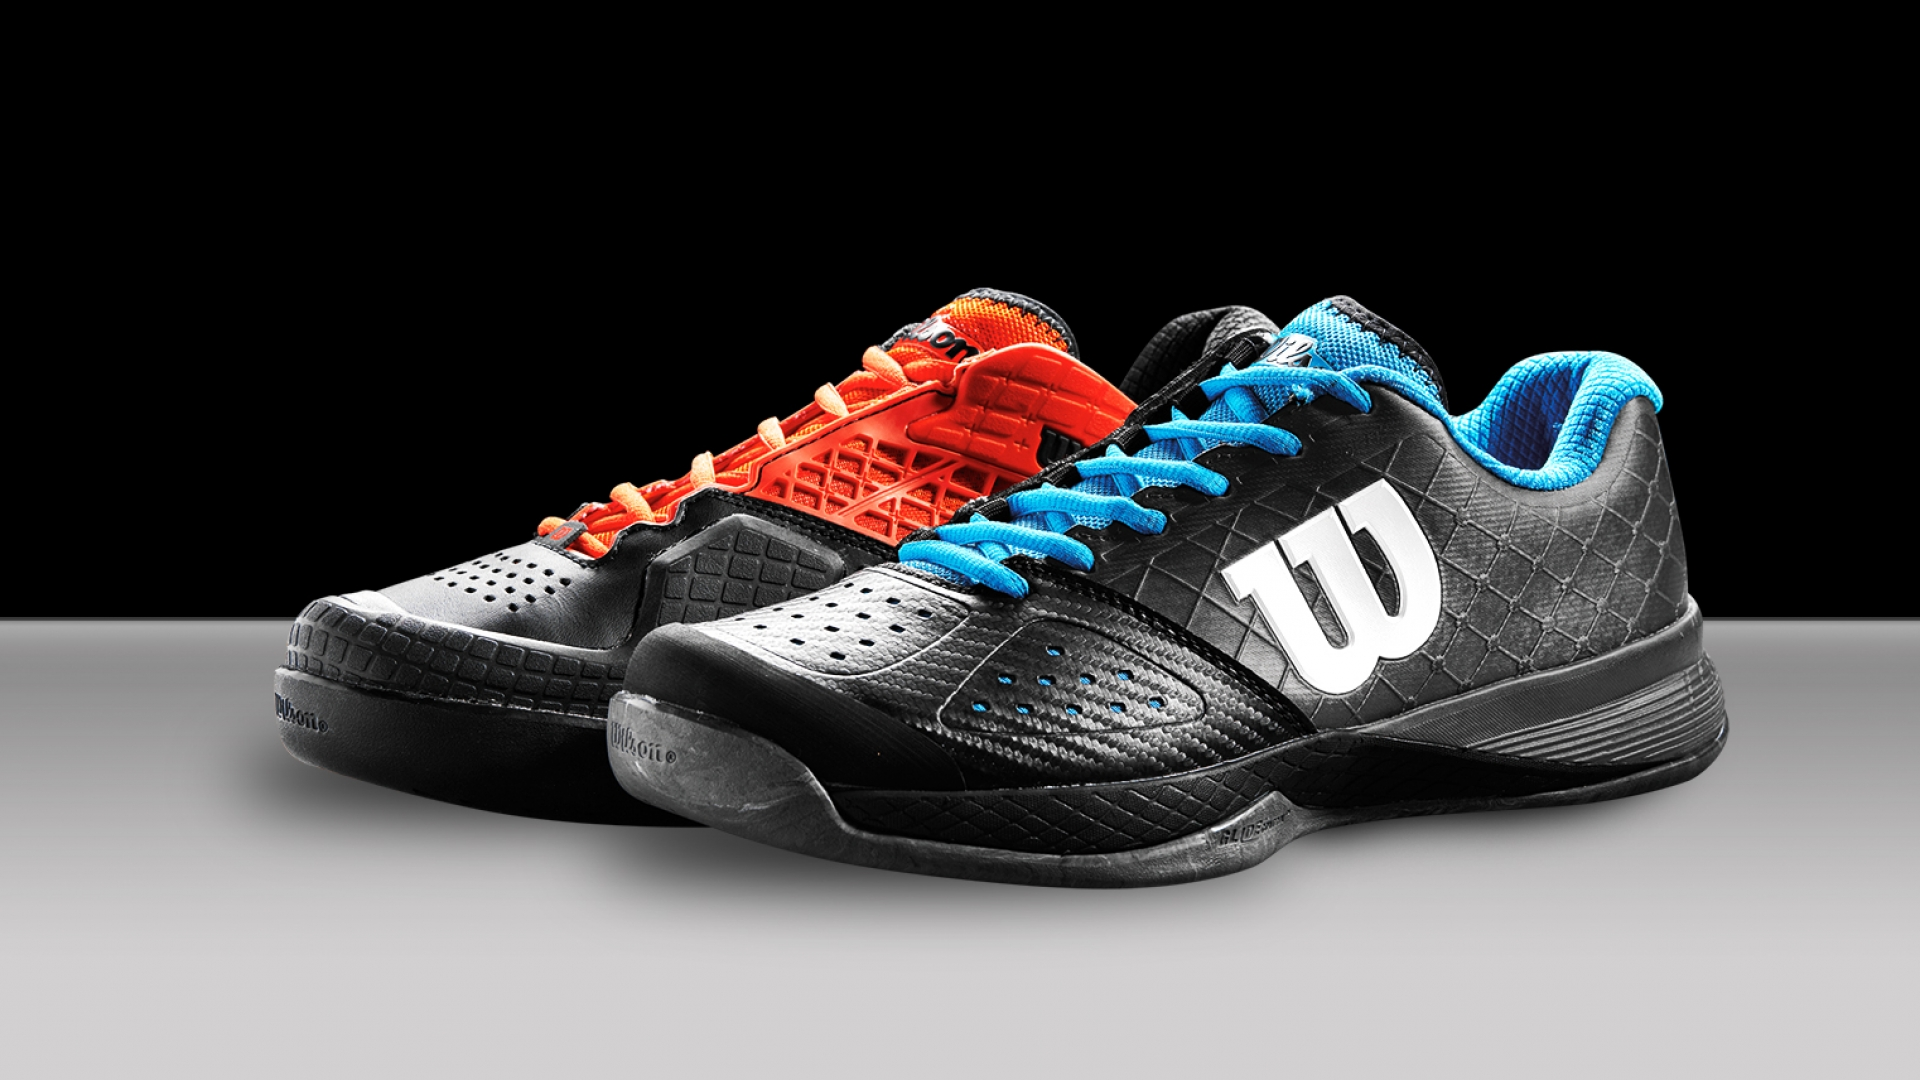 Wilson Court Shoes Png - Glide: The World's Only Tennis Shoes Made to Slide on Hardcourt